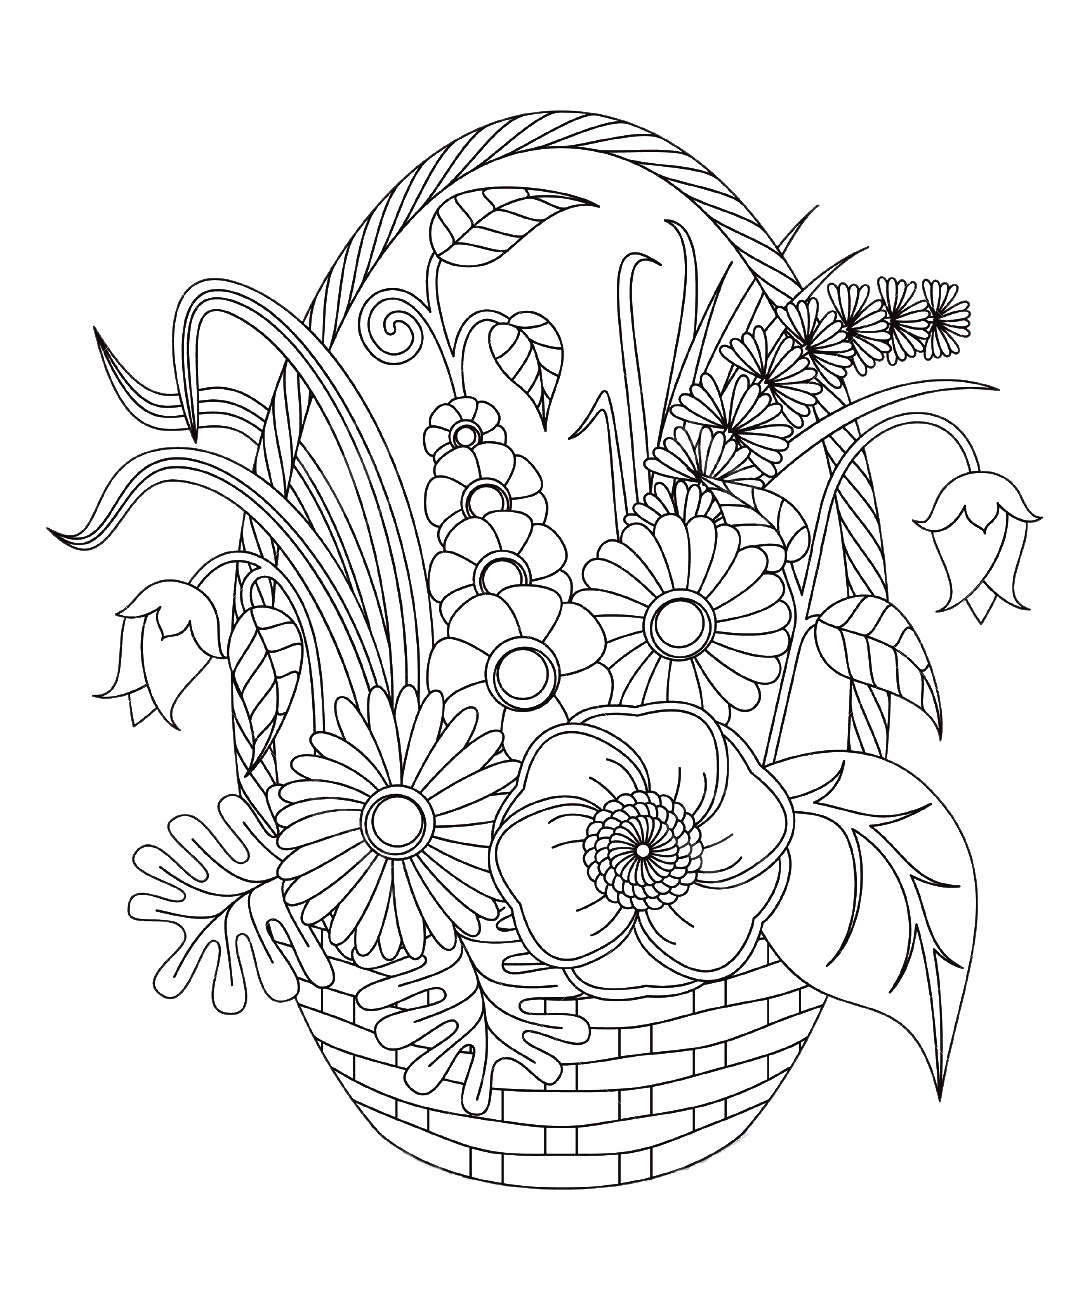 Free Intricate Flower Coloring Pages, Download Free Clip Art, Free ... | 1300x1077